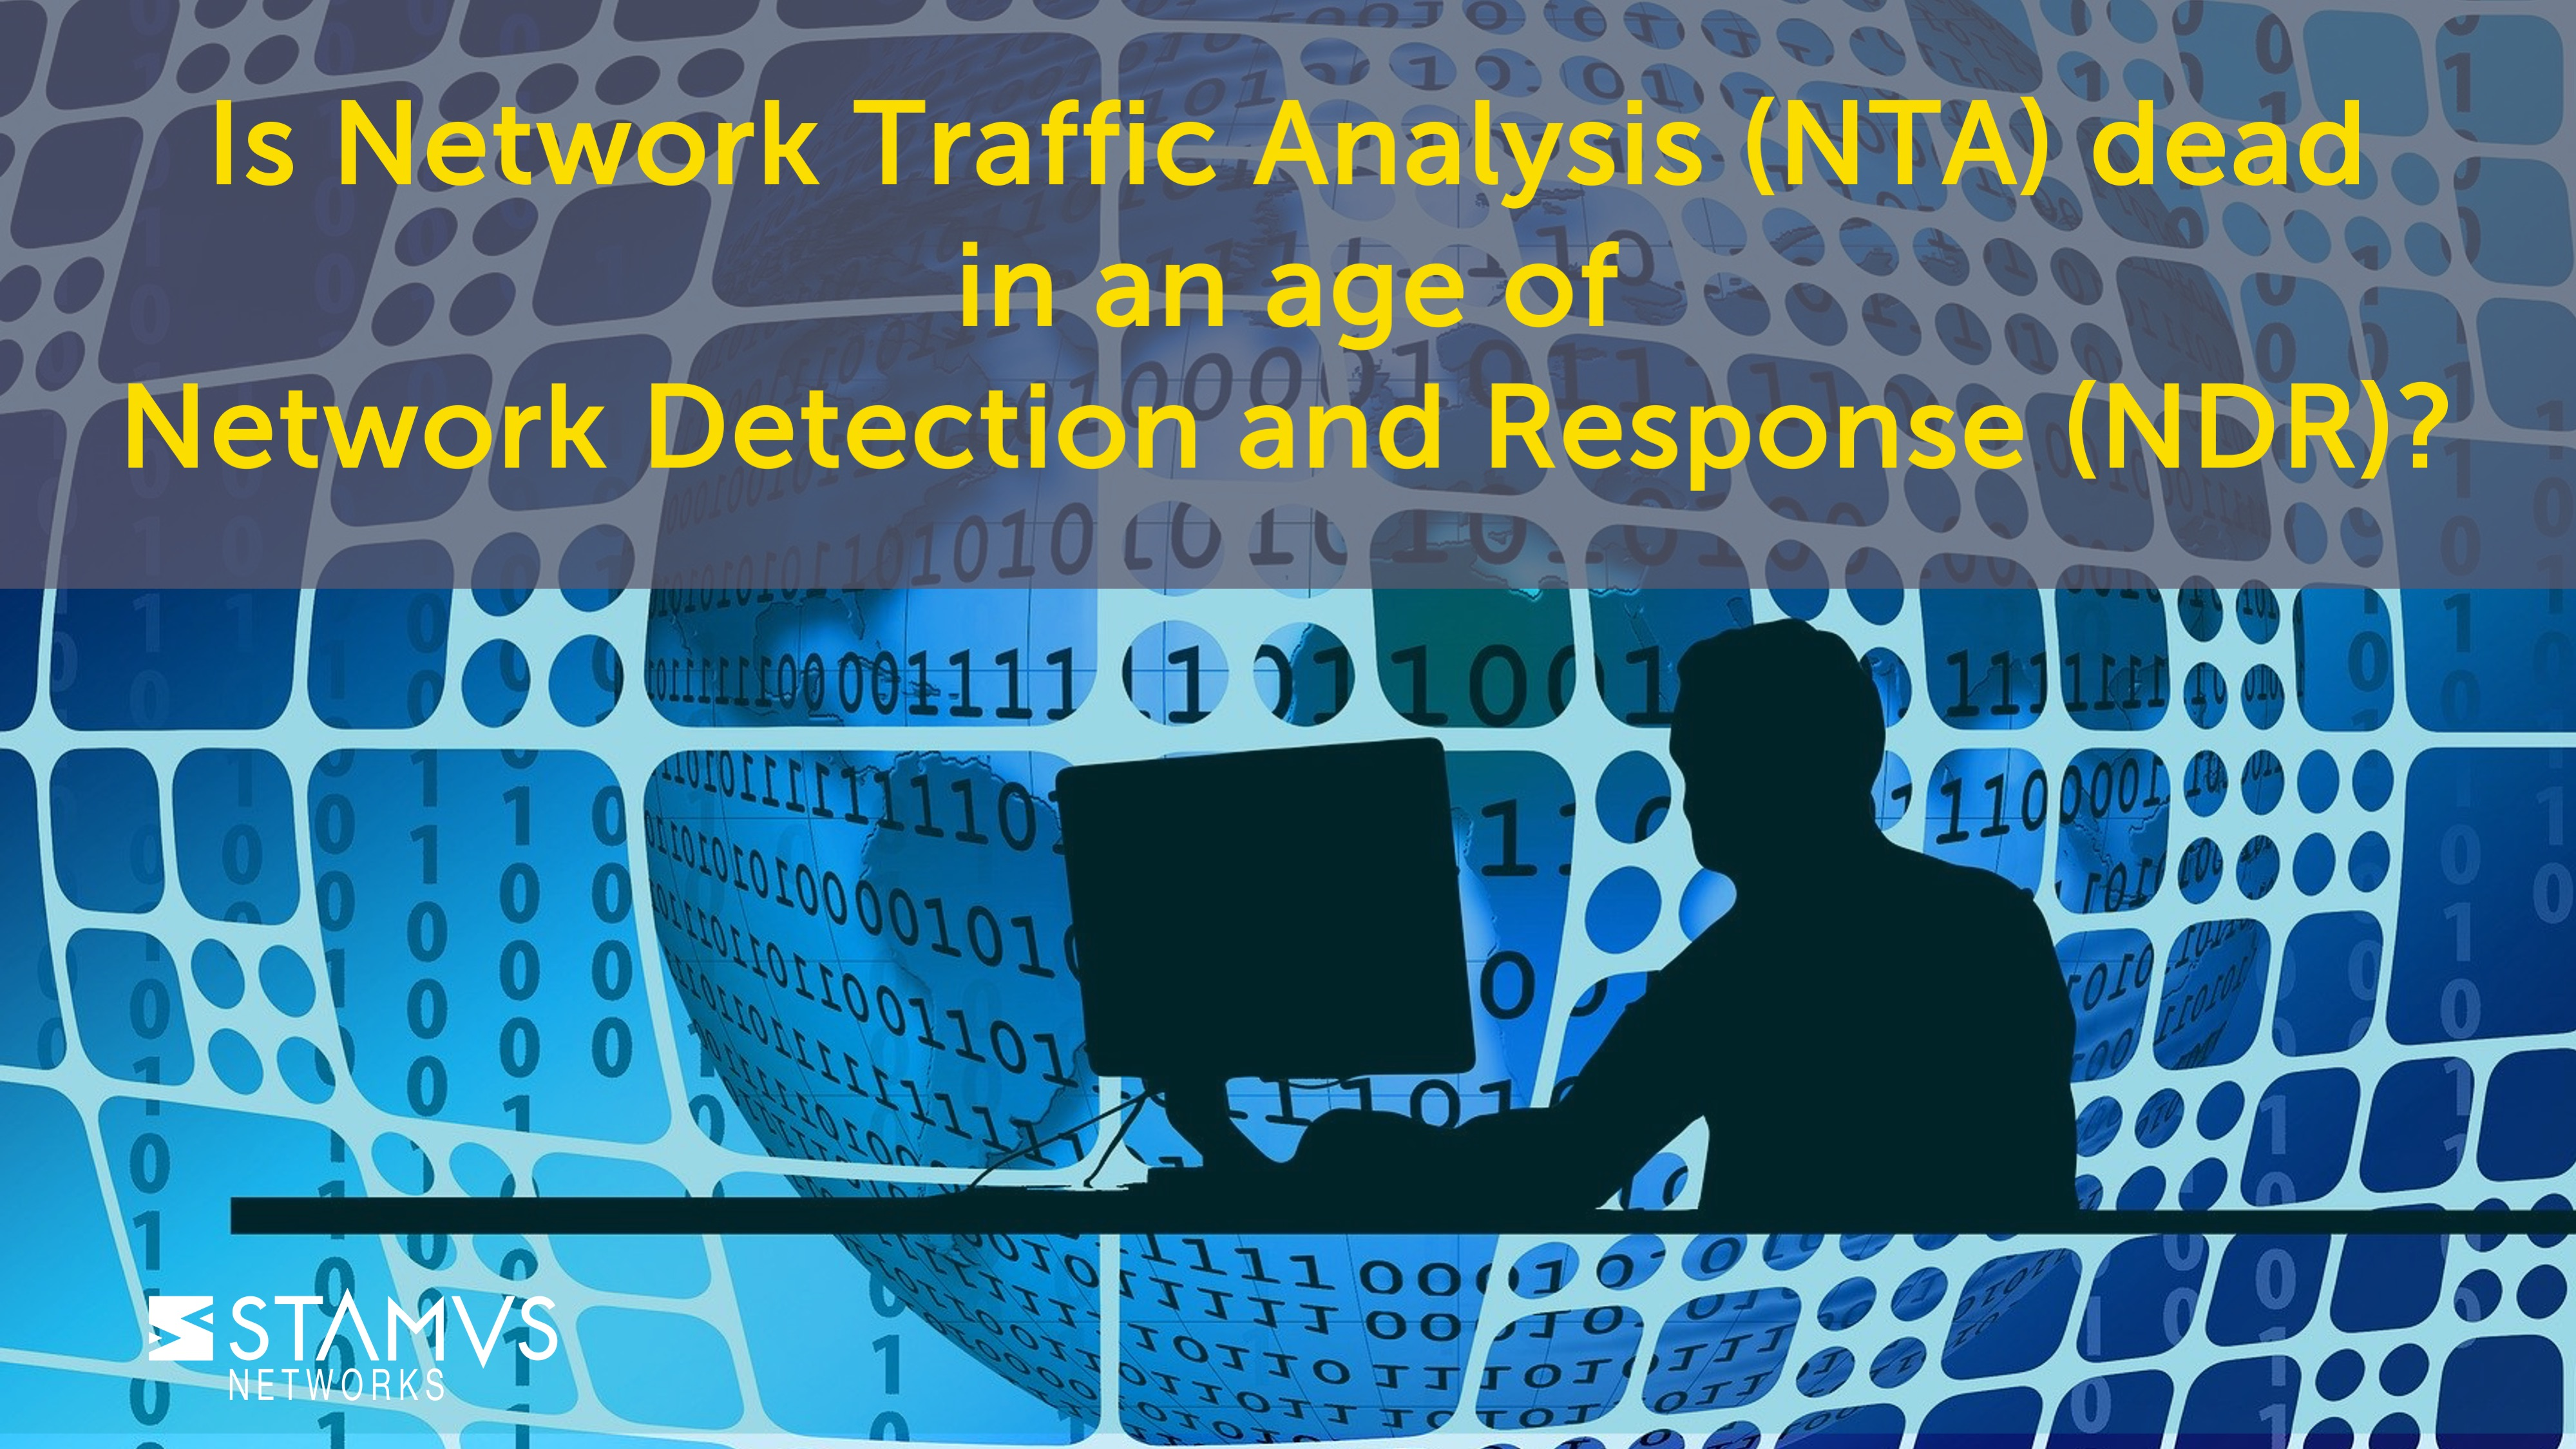 Did Network Detection and Response (NDR) kill Network Traffic Analysis (NTA)?